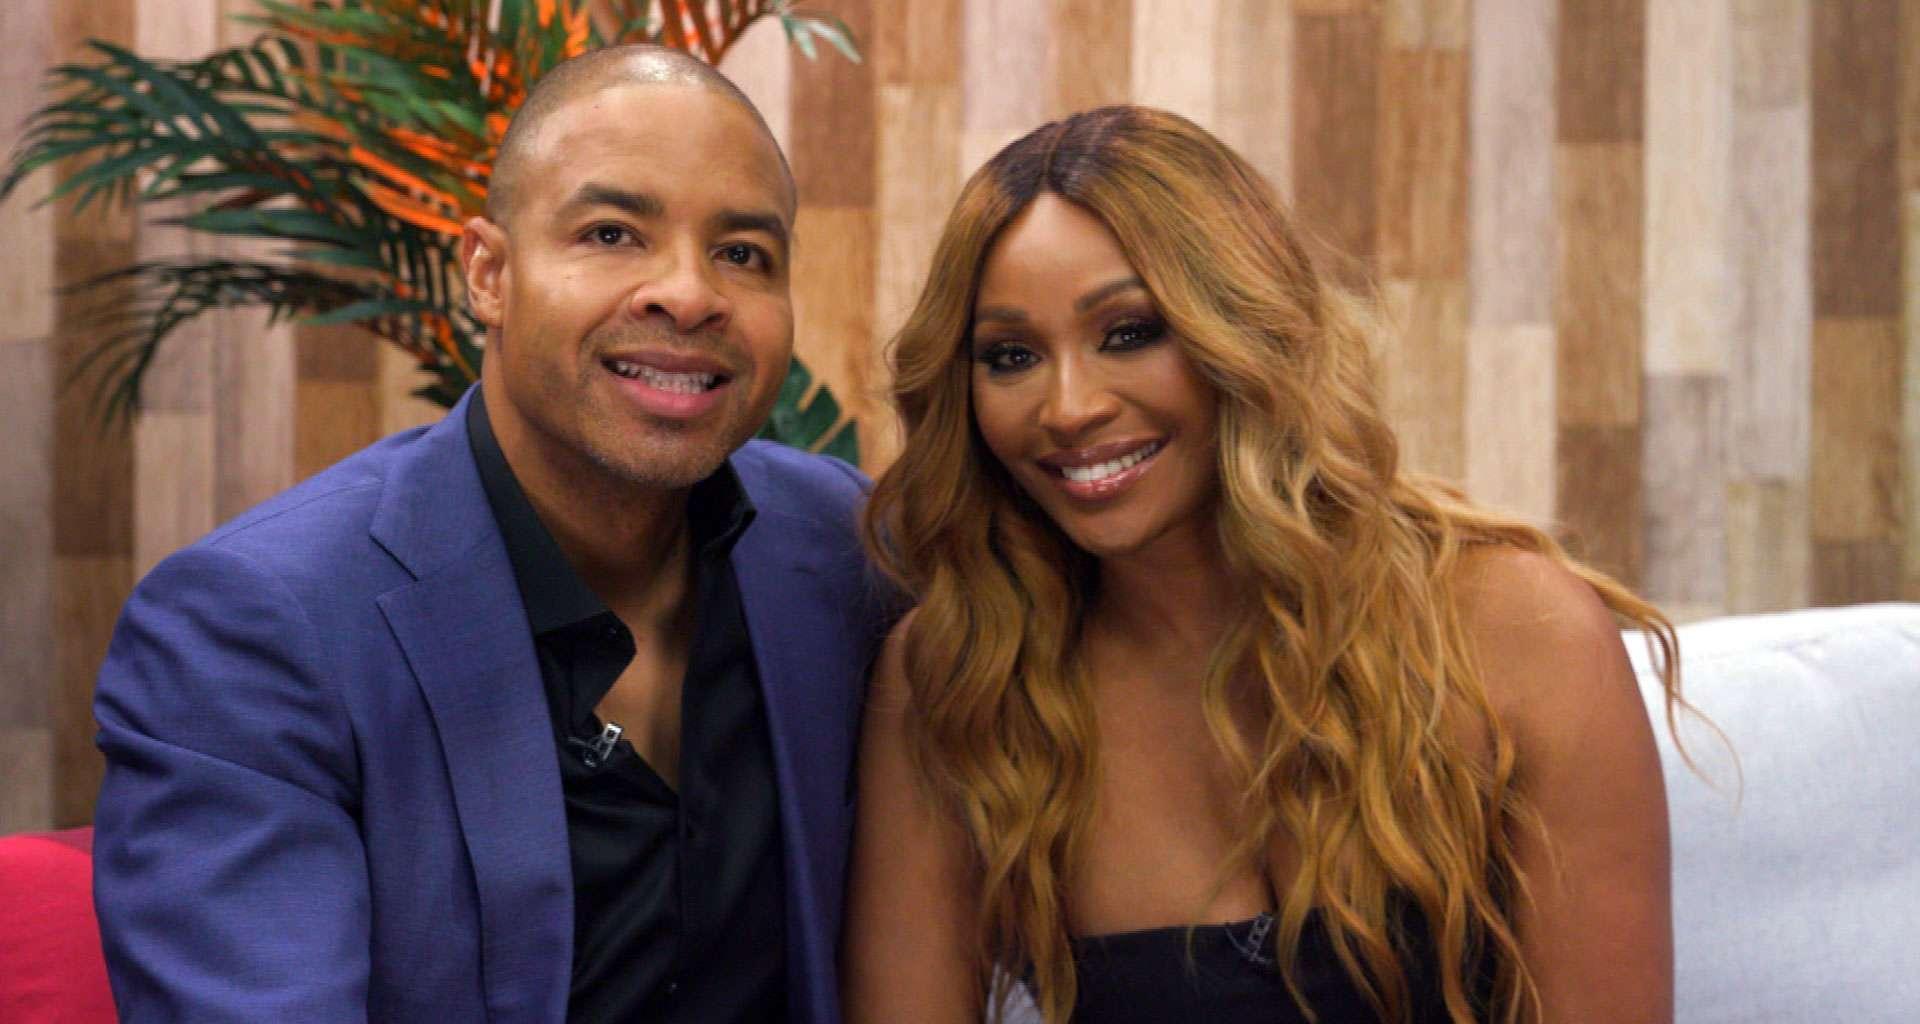 Cynthia Bailey And Mike Hill Clashed Over COVID Wedding In RHOA Premiere: 'Do You Want A Marriage Or A Wedding?'